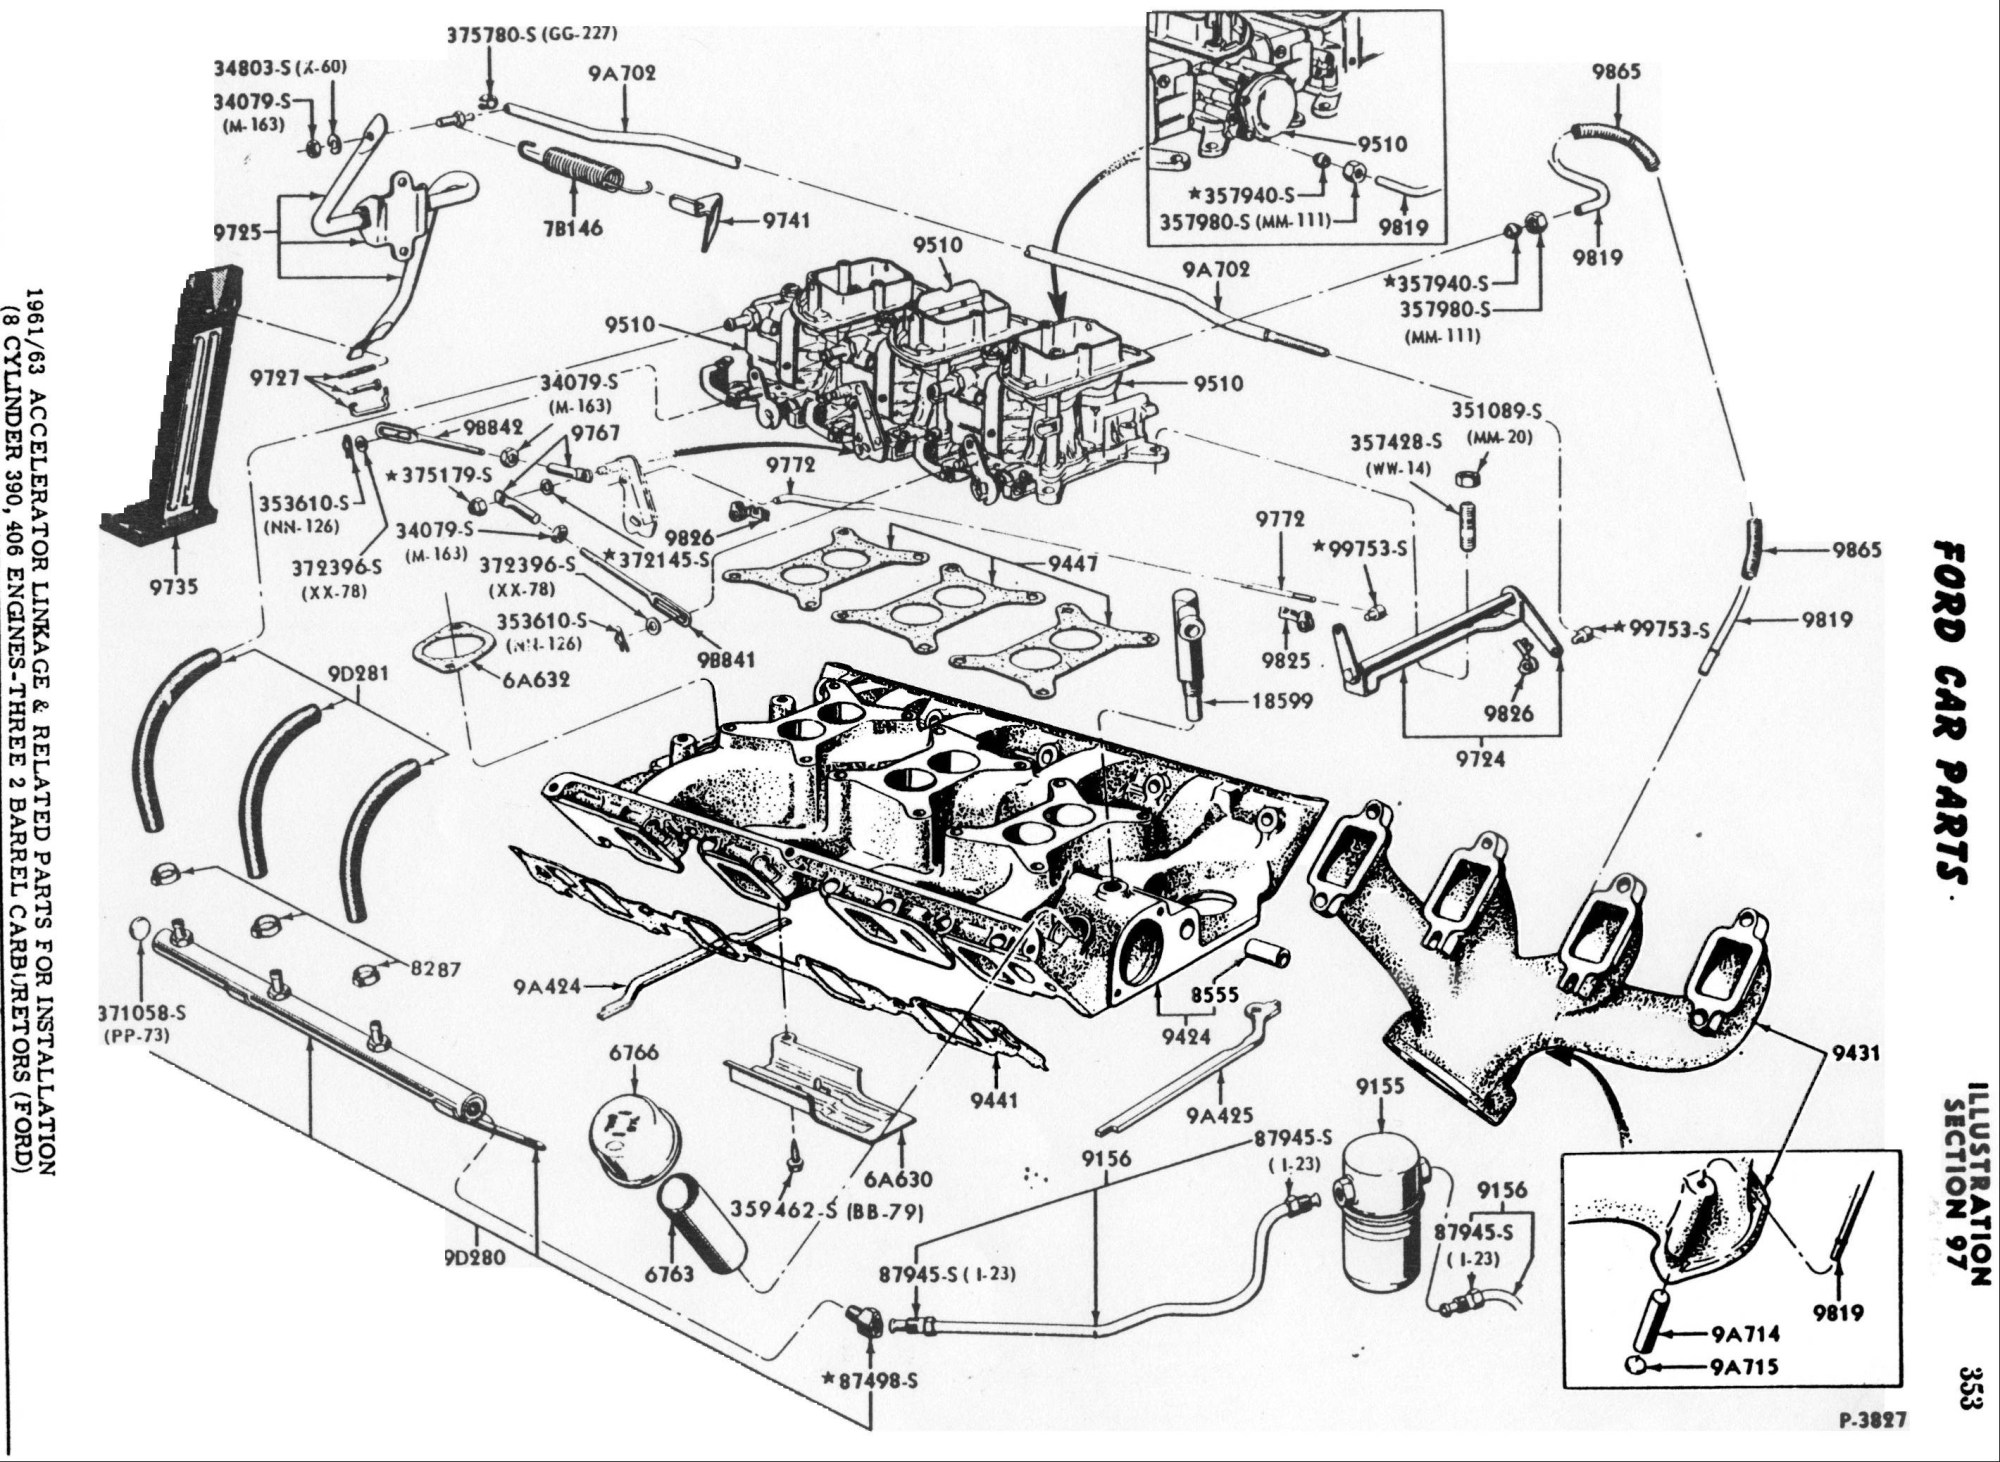 hight resolution of 1990 honda accord engine diagram 460 ford engine diagram wiring info of 1990 honda accord